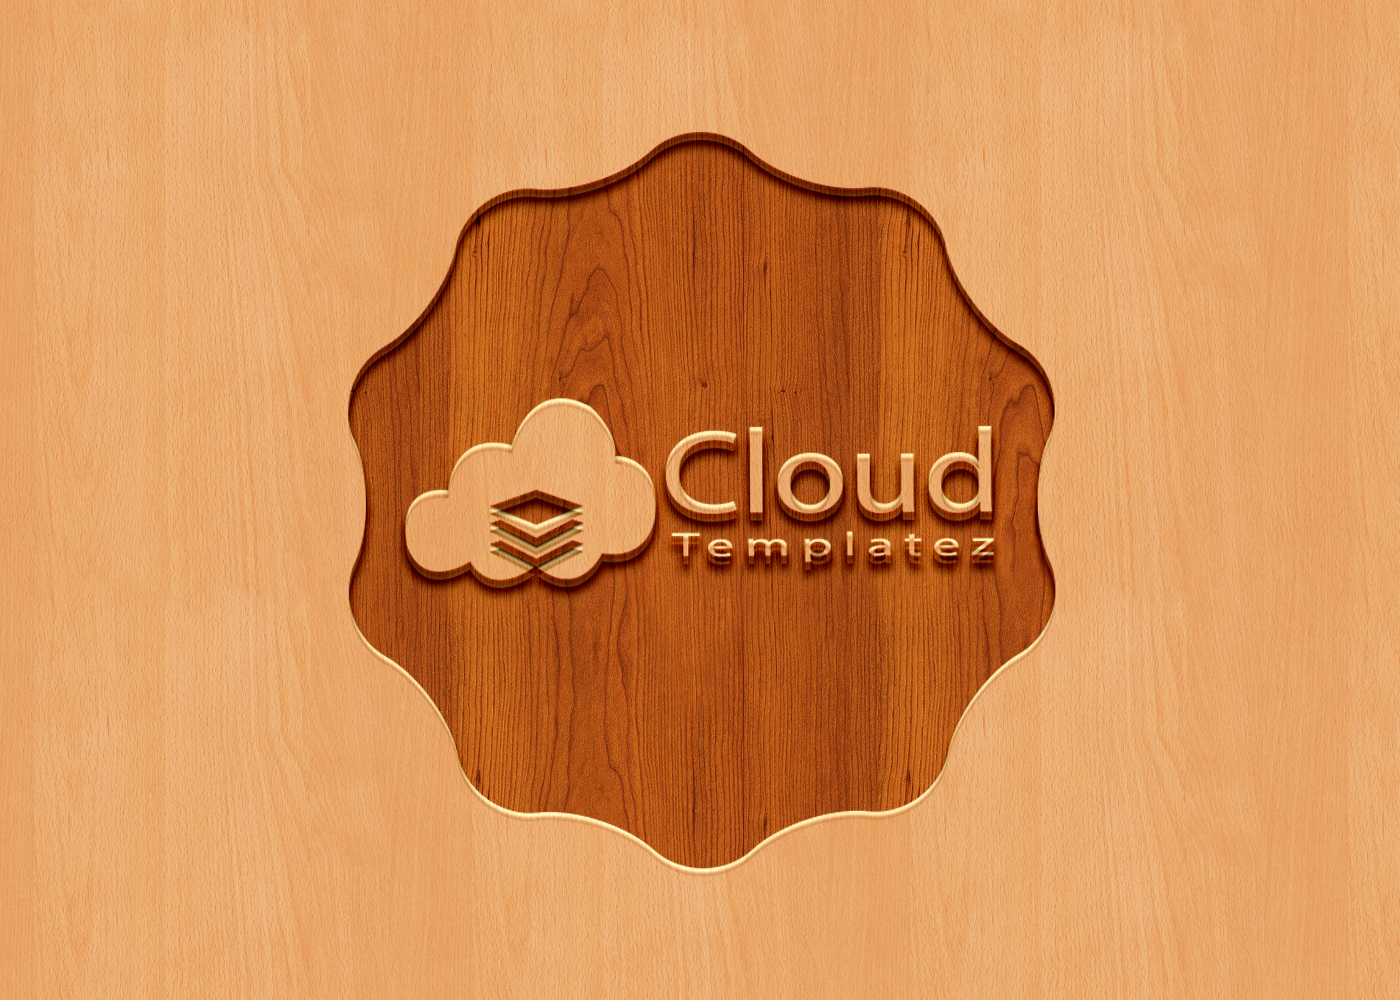 Carved Wood Logo Mockup PSD Free - Cloud Templatez - All Free ...